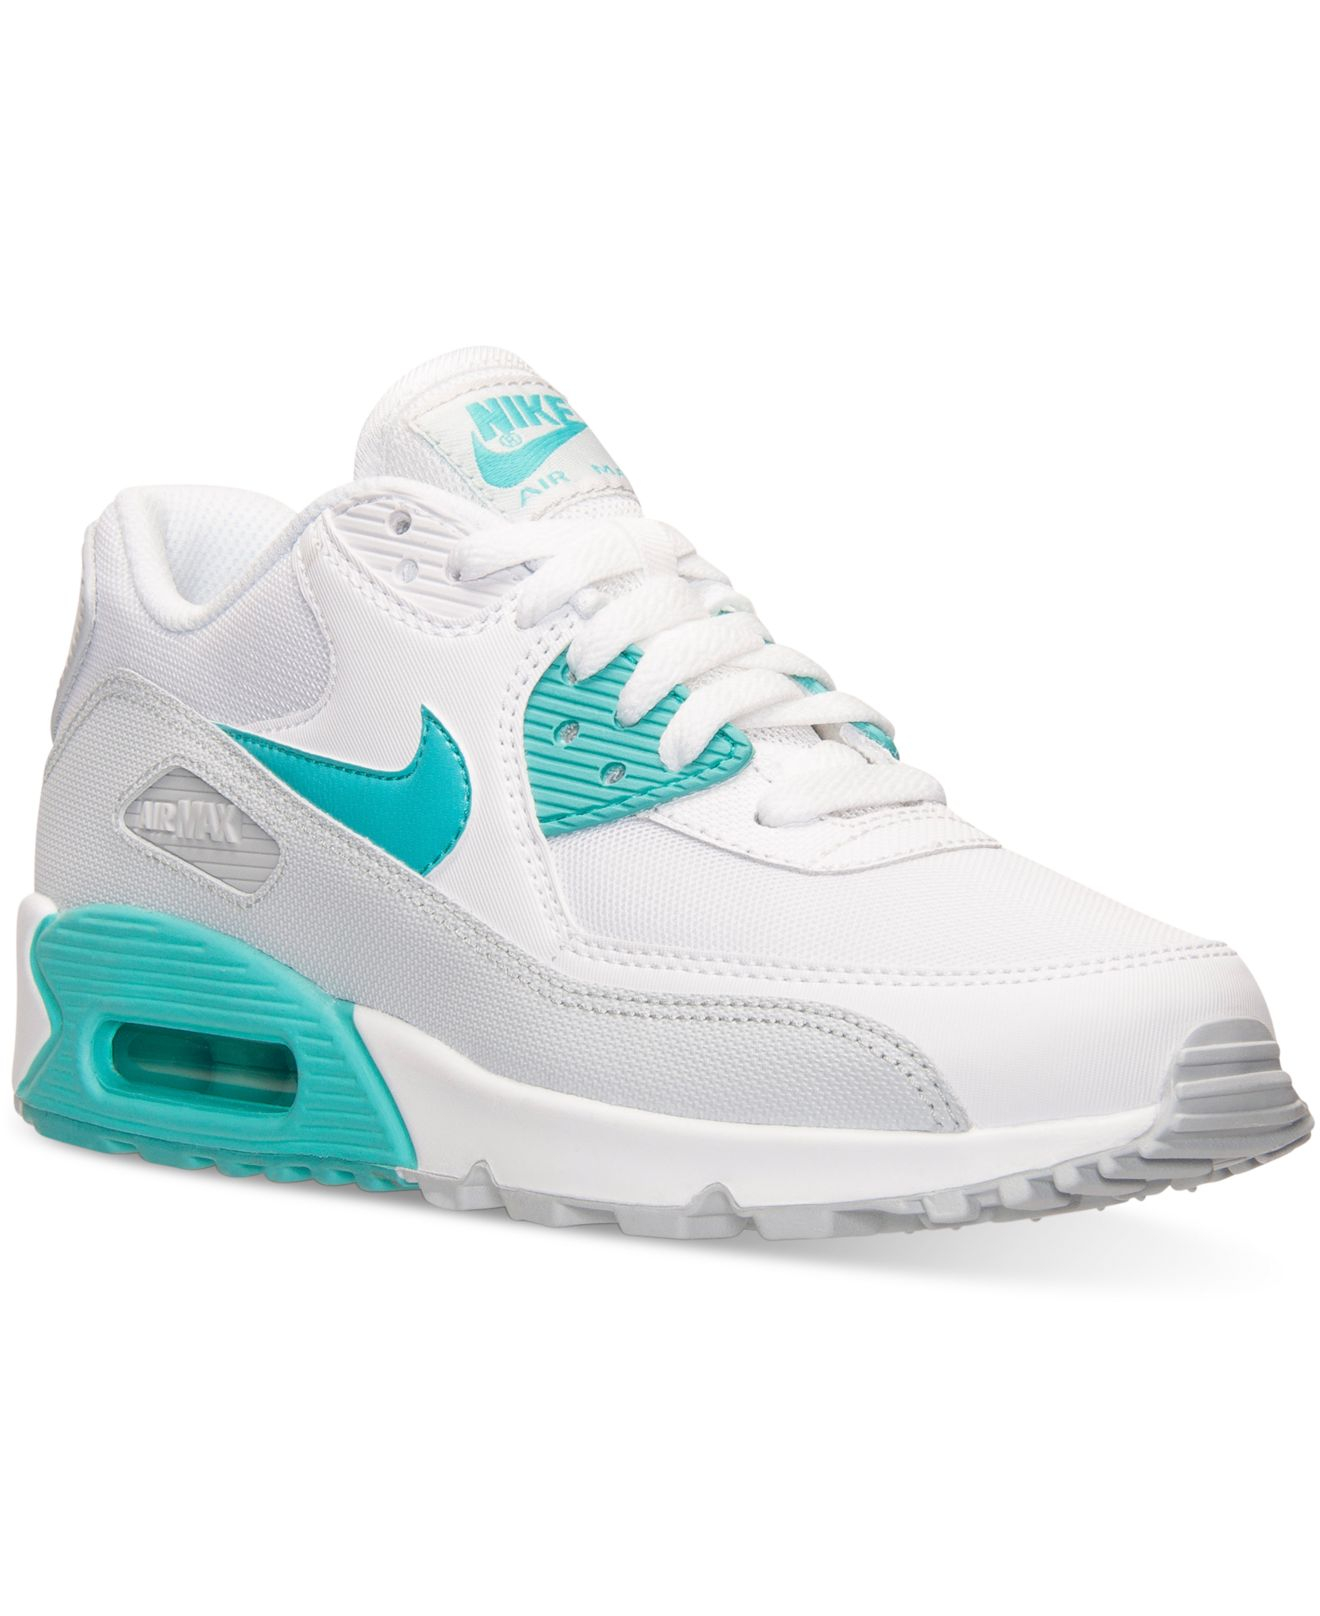 0c08589447817c Lyst - Nike Women s Air Max 90 Essential Running Sneakers From Finish Line  in White